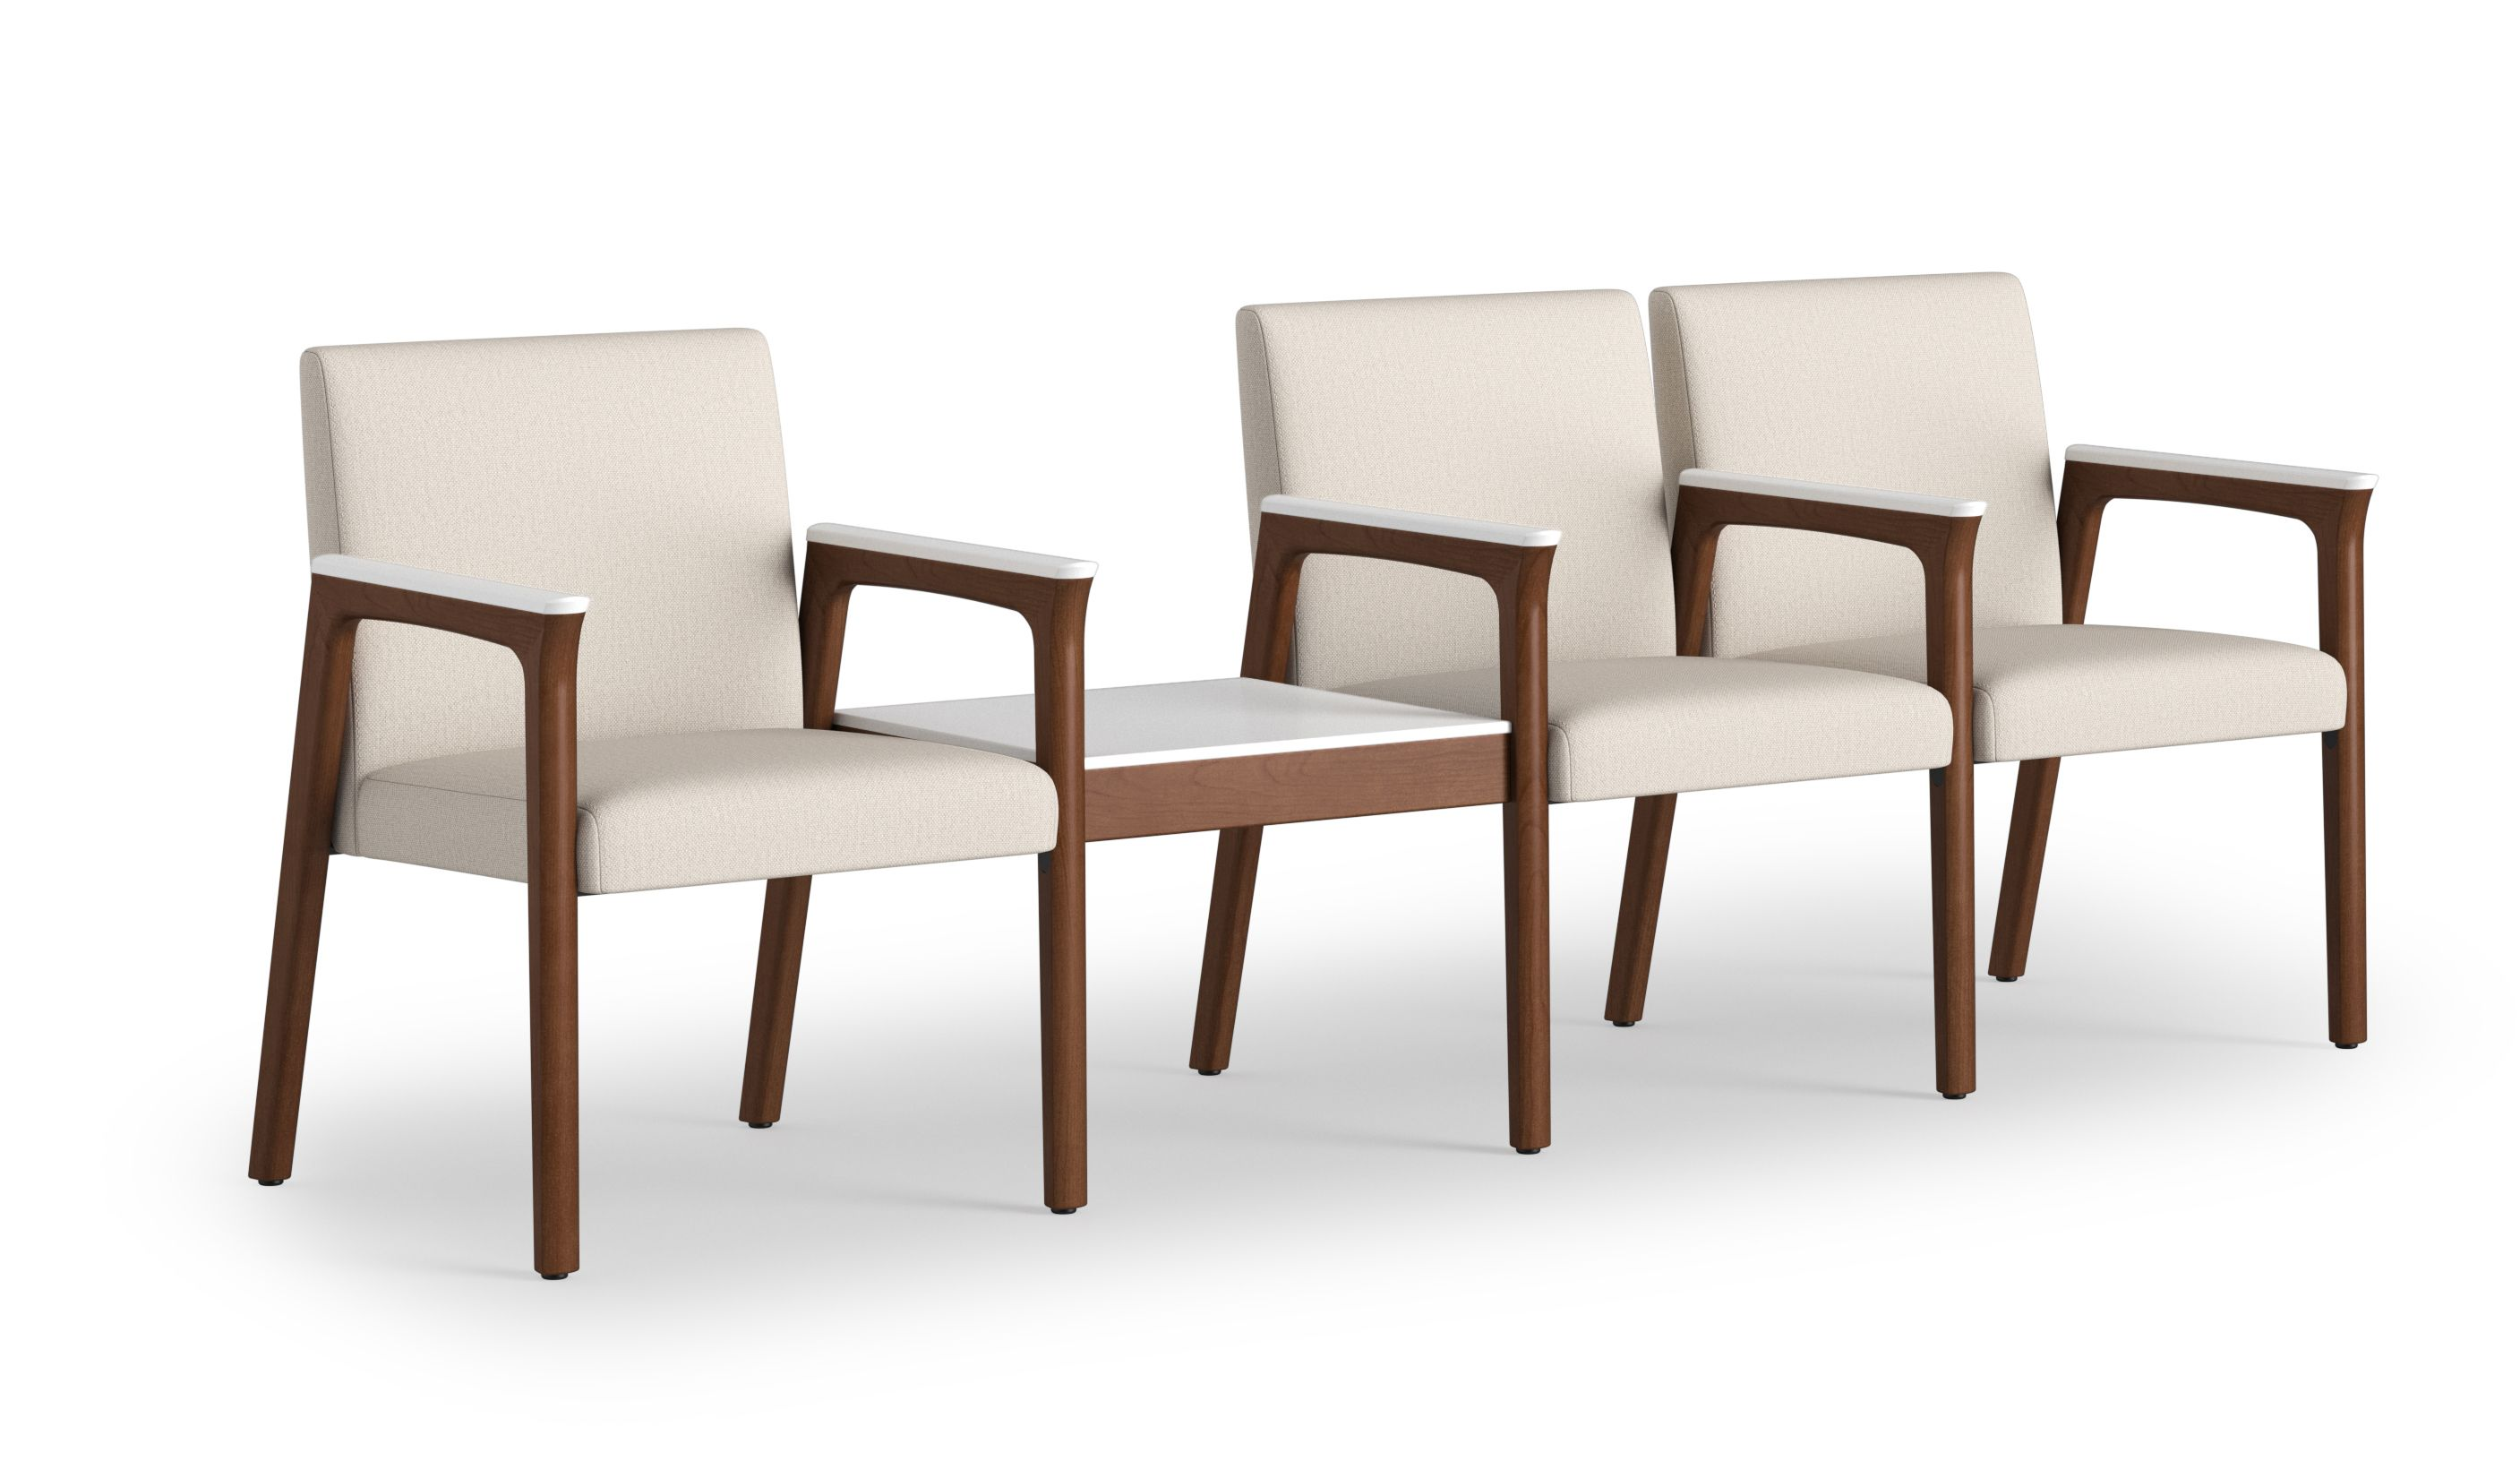 Modern Contract Furniture Design Healthcare And Corporate